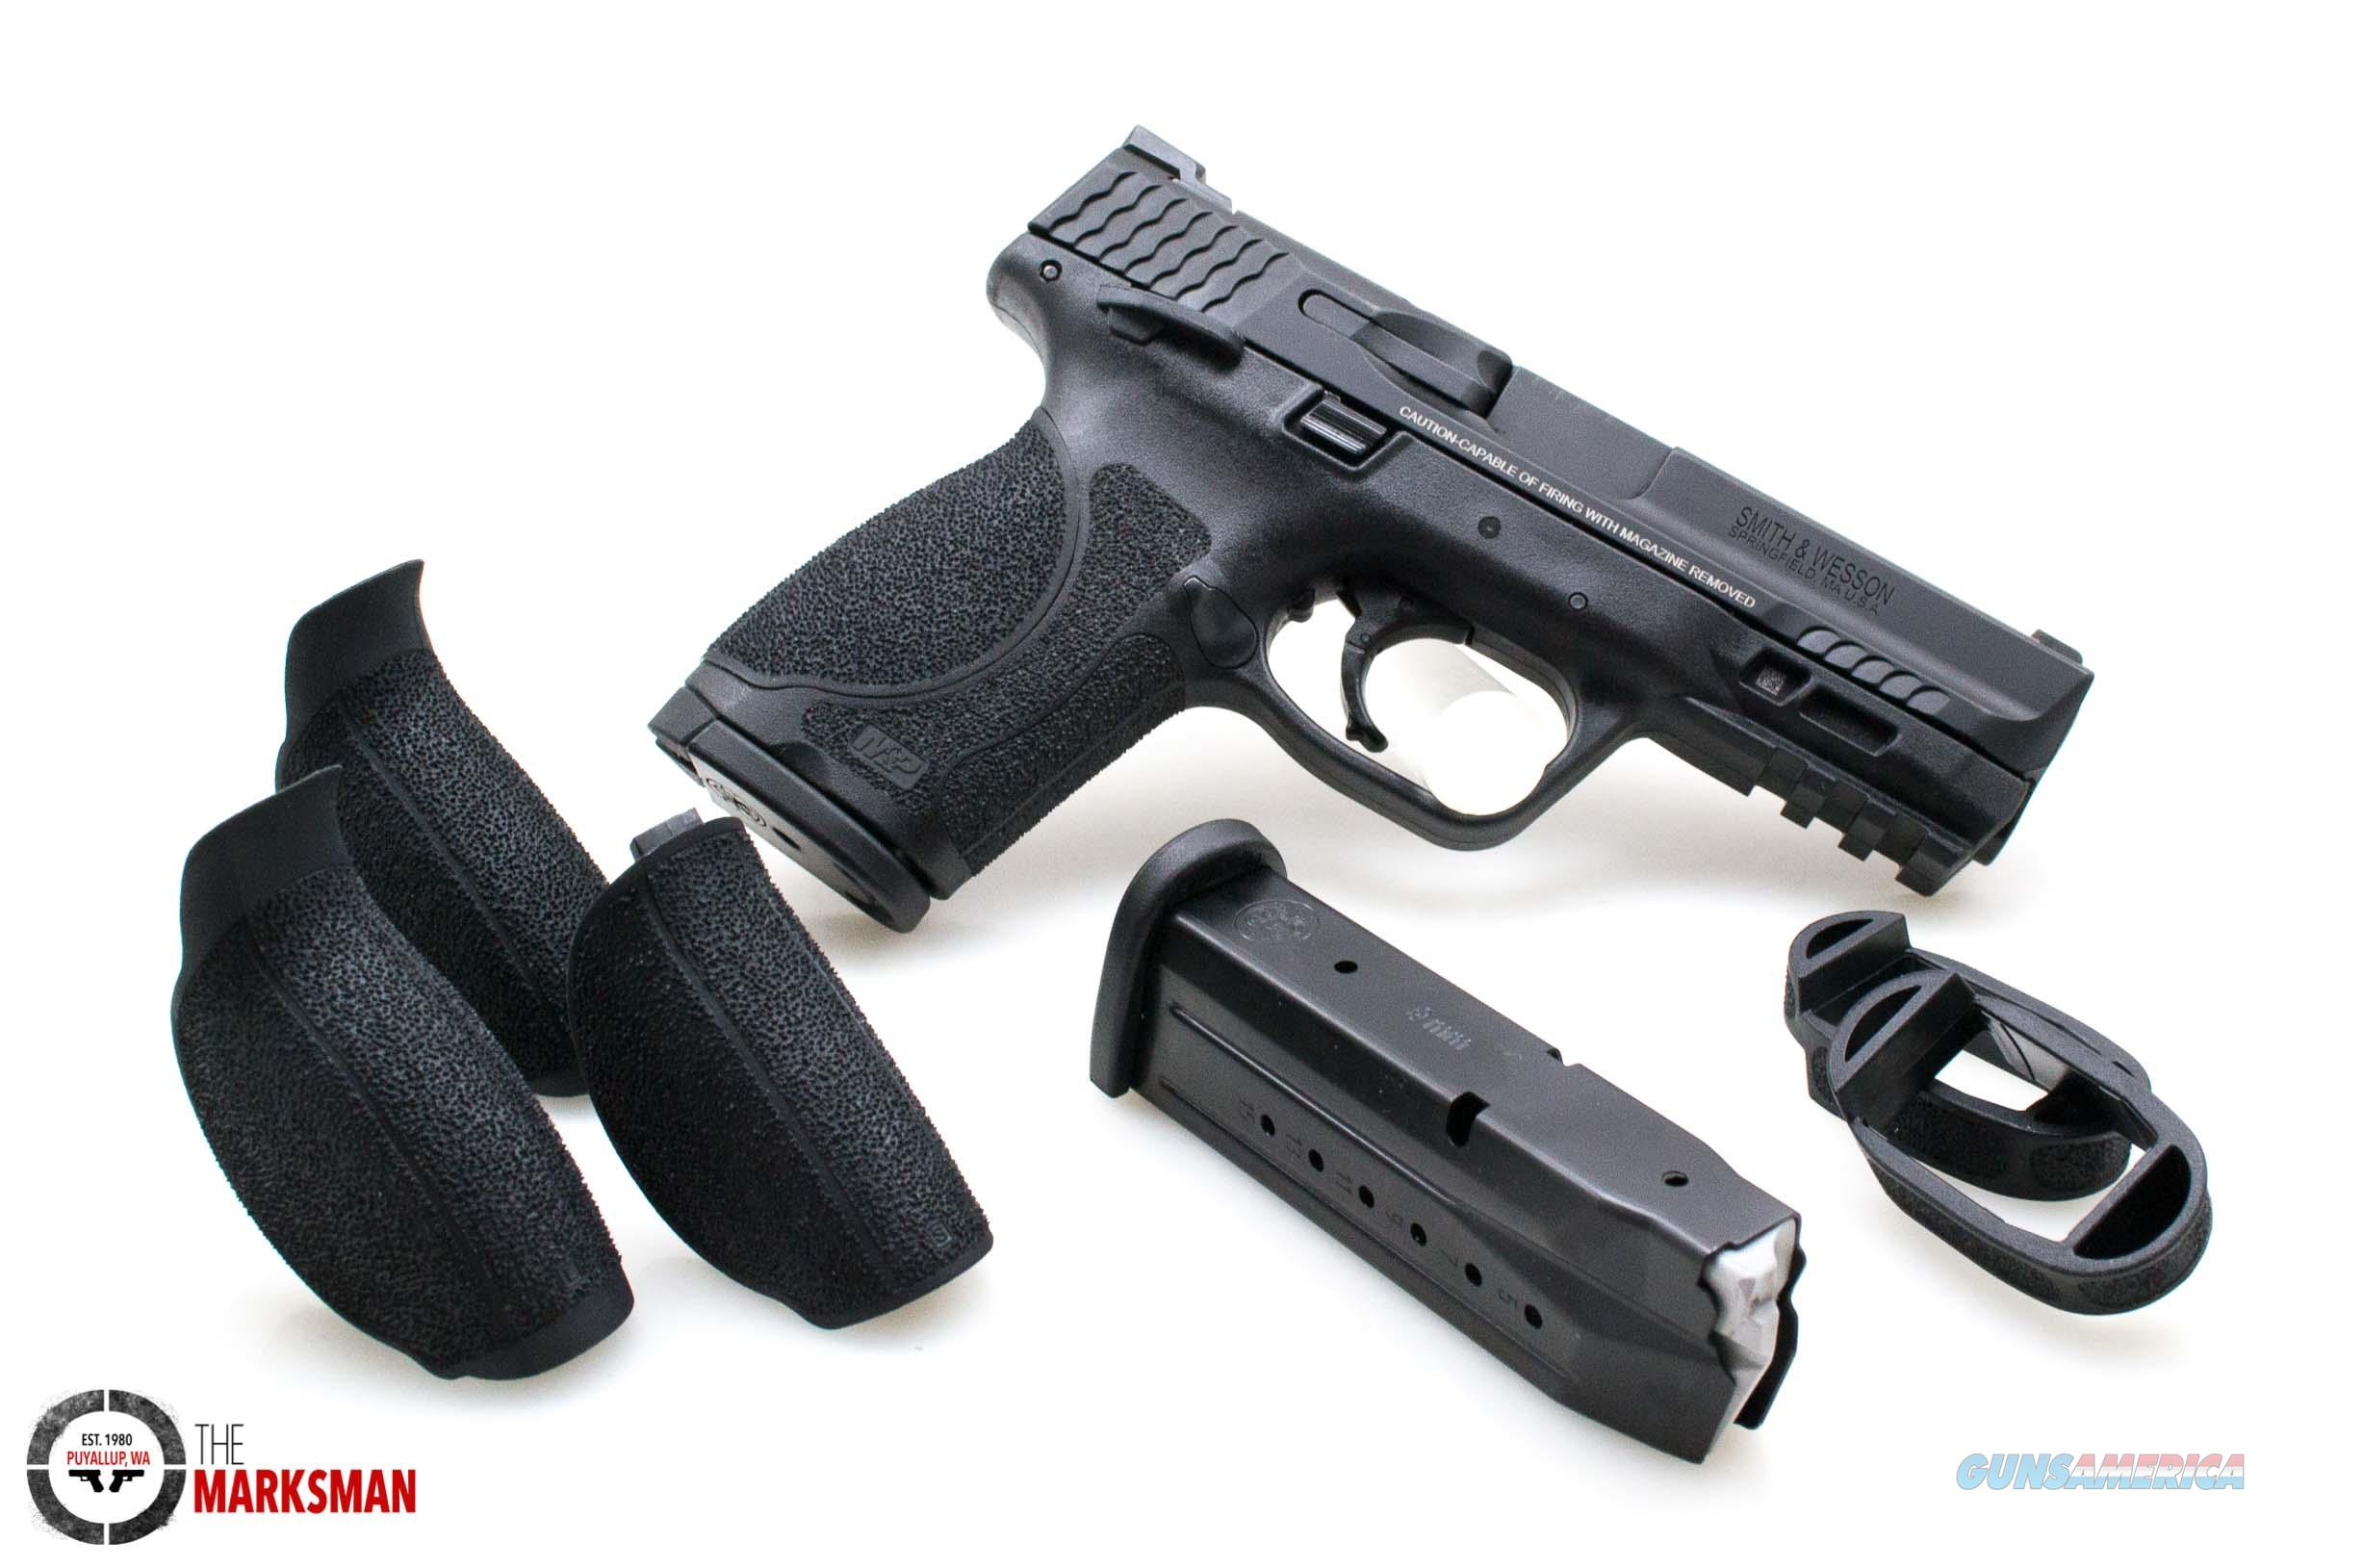 Smith and Wesson M&P9 2.0 Compact, 9mm w/ Thumb Safety  Guns > Pistols > Smith & Wesson Pistols - Autos > Polymer Frame